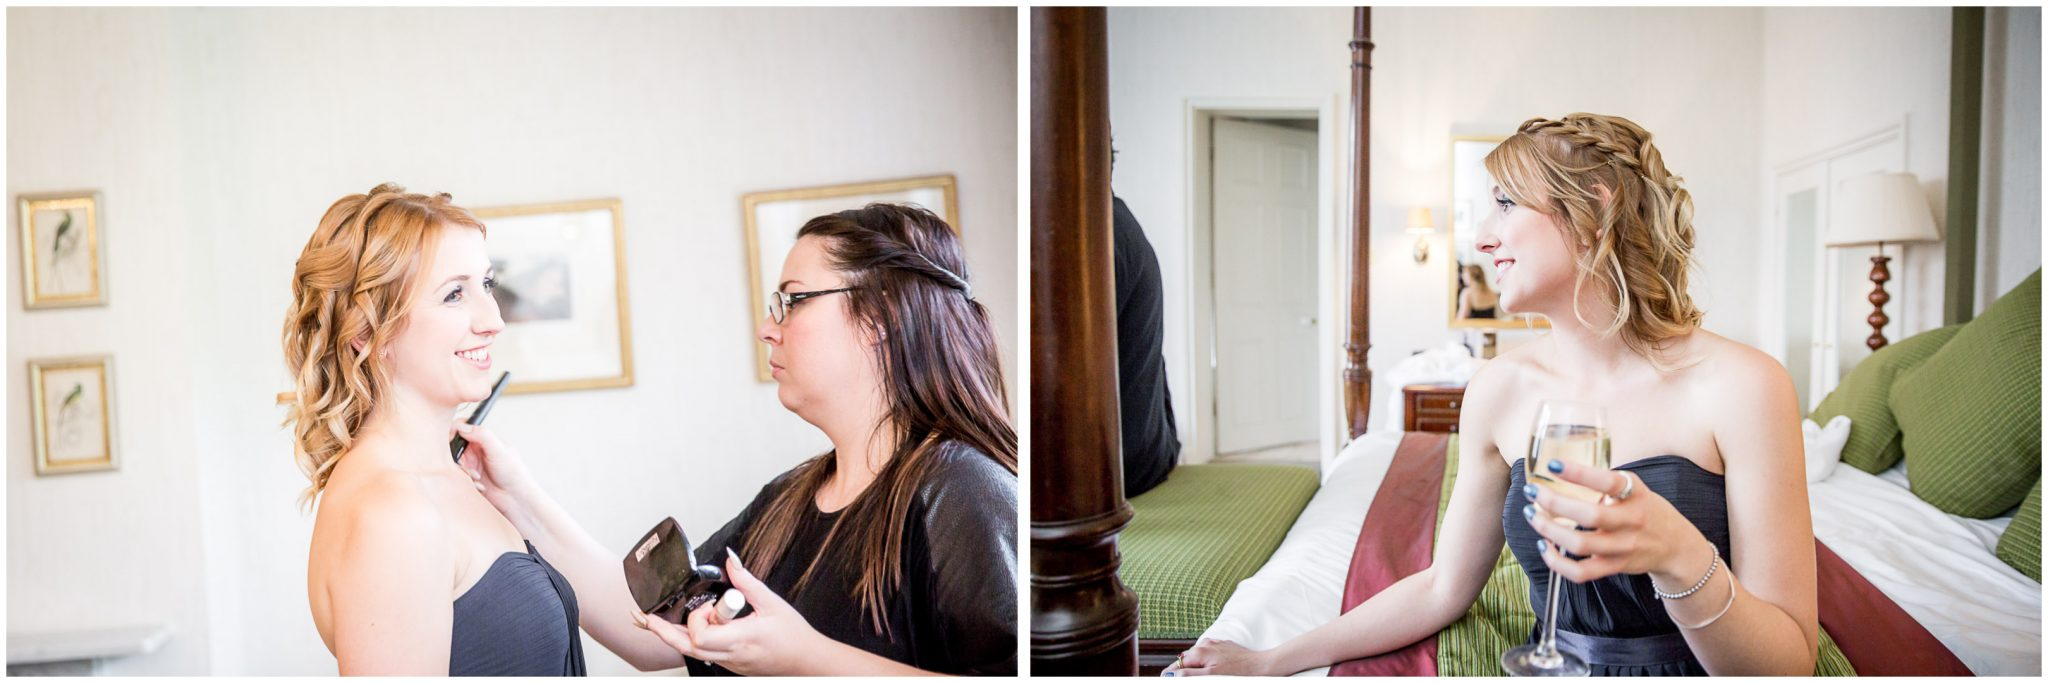 Audleys Wood wedding photograhy finishing touches during prep